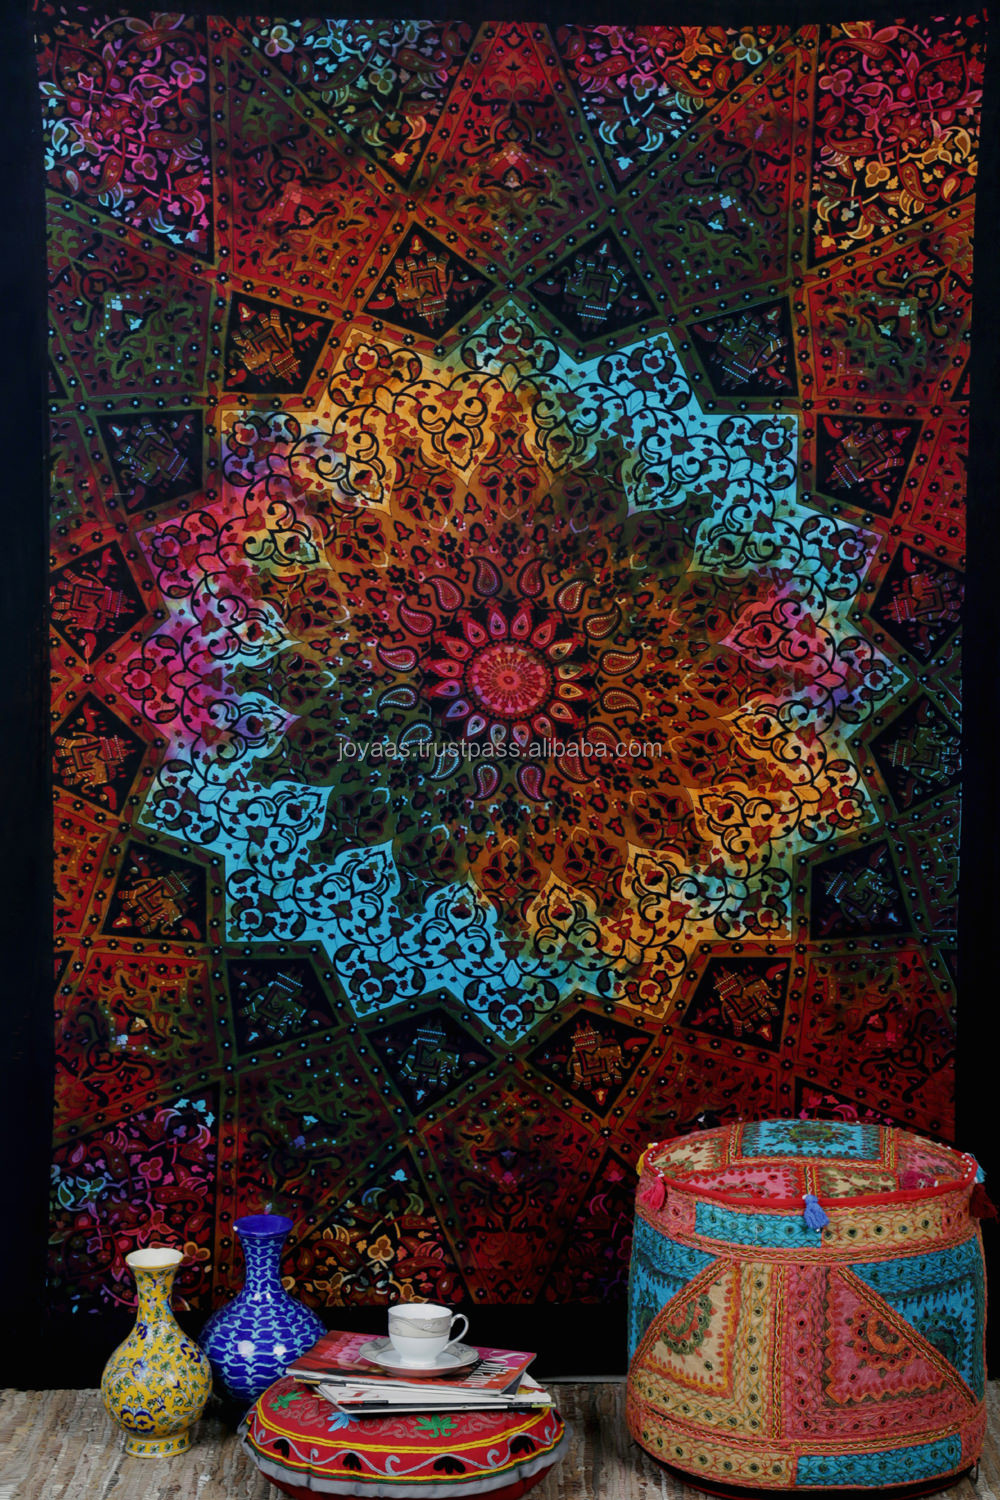 Tie Dye Psychedelic Mandala Tapestry Hippie Wall Hanging Indian Decor Bedspread